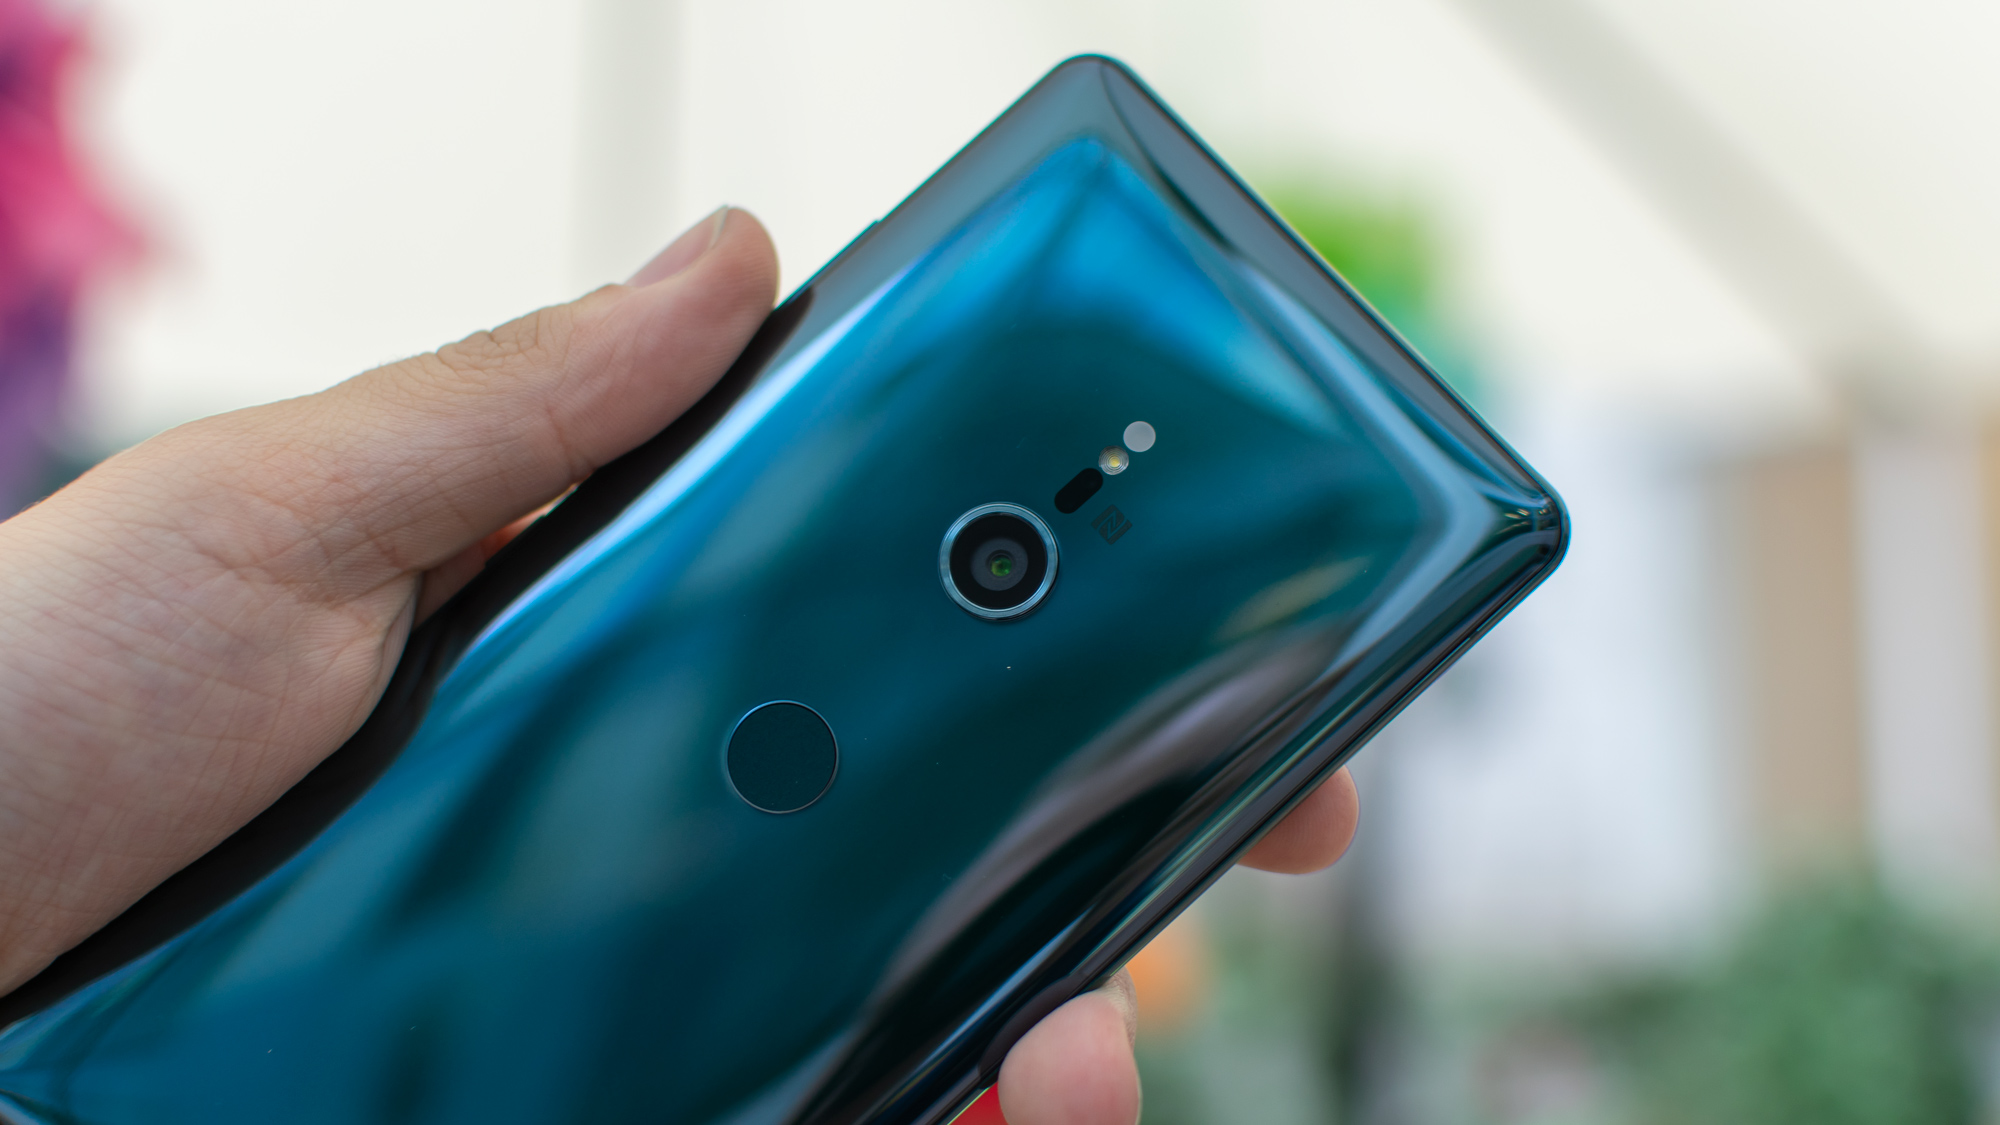 Sony Xperia XZ3 hands-on: Keeping up with the times